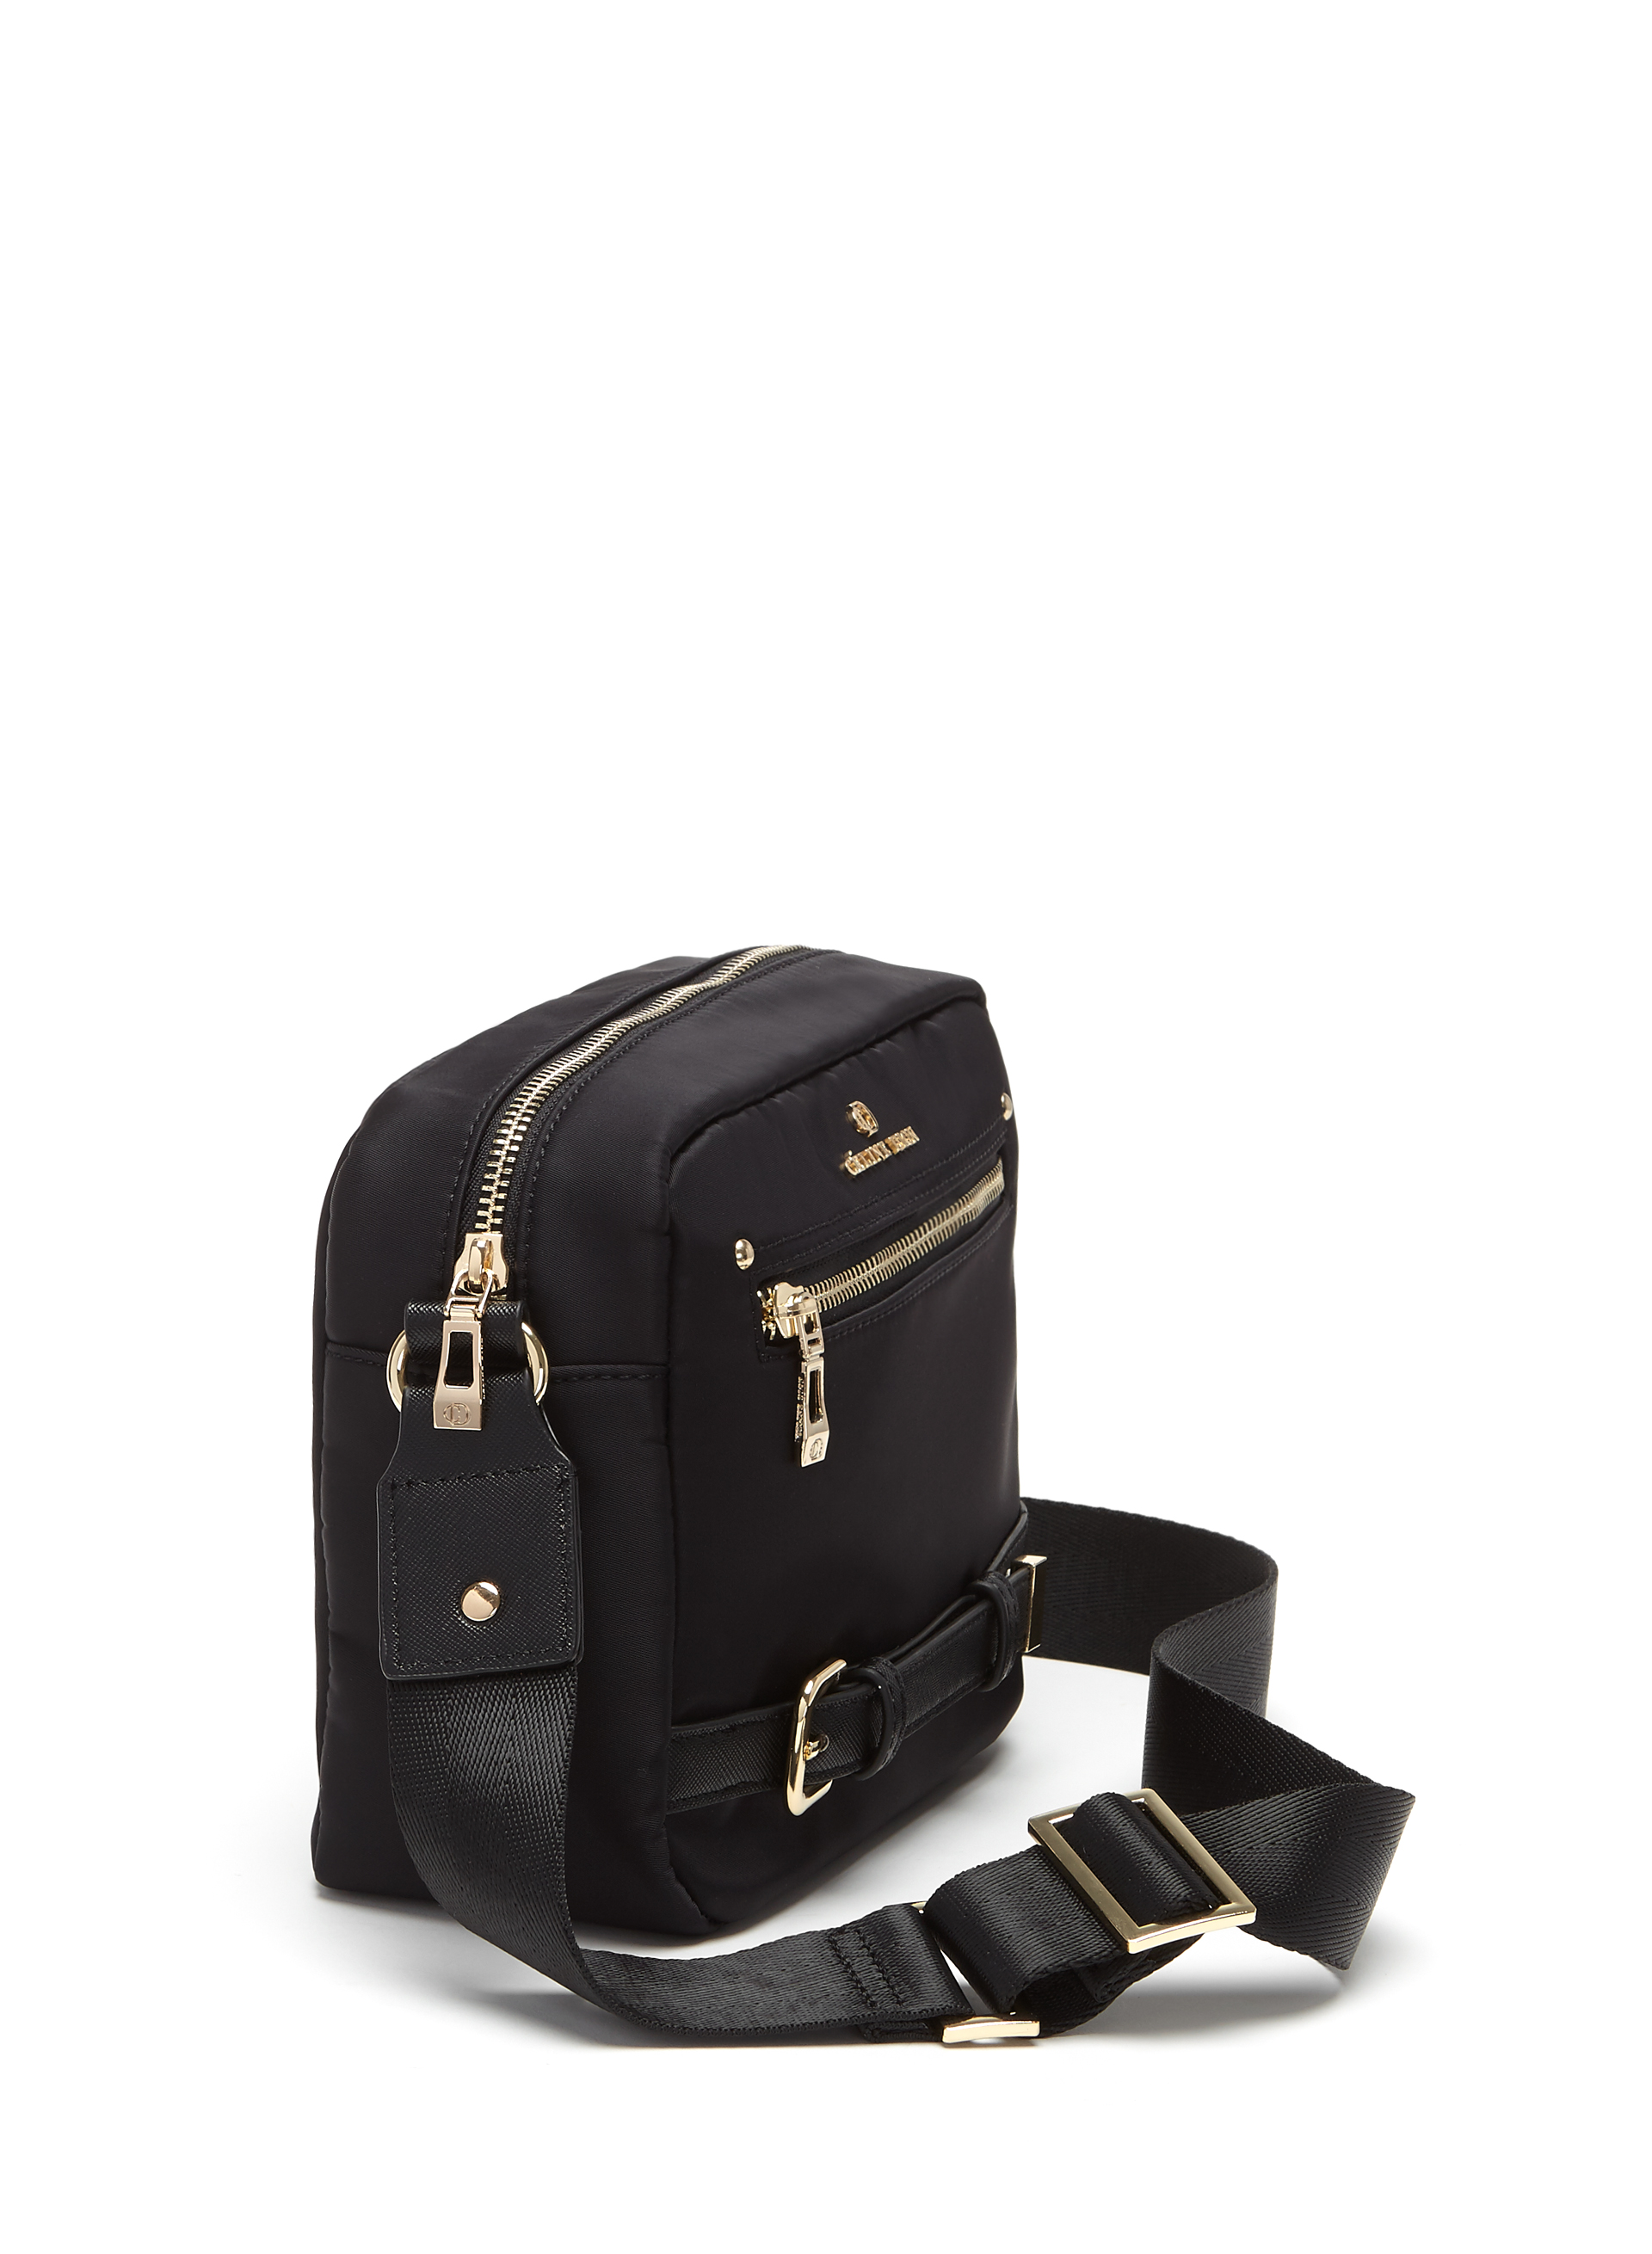 CÉLINE DION - Presto Crossbody Bag, Black, hi-res